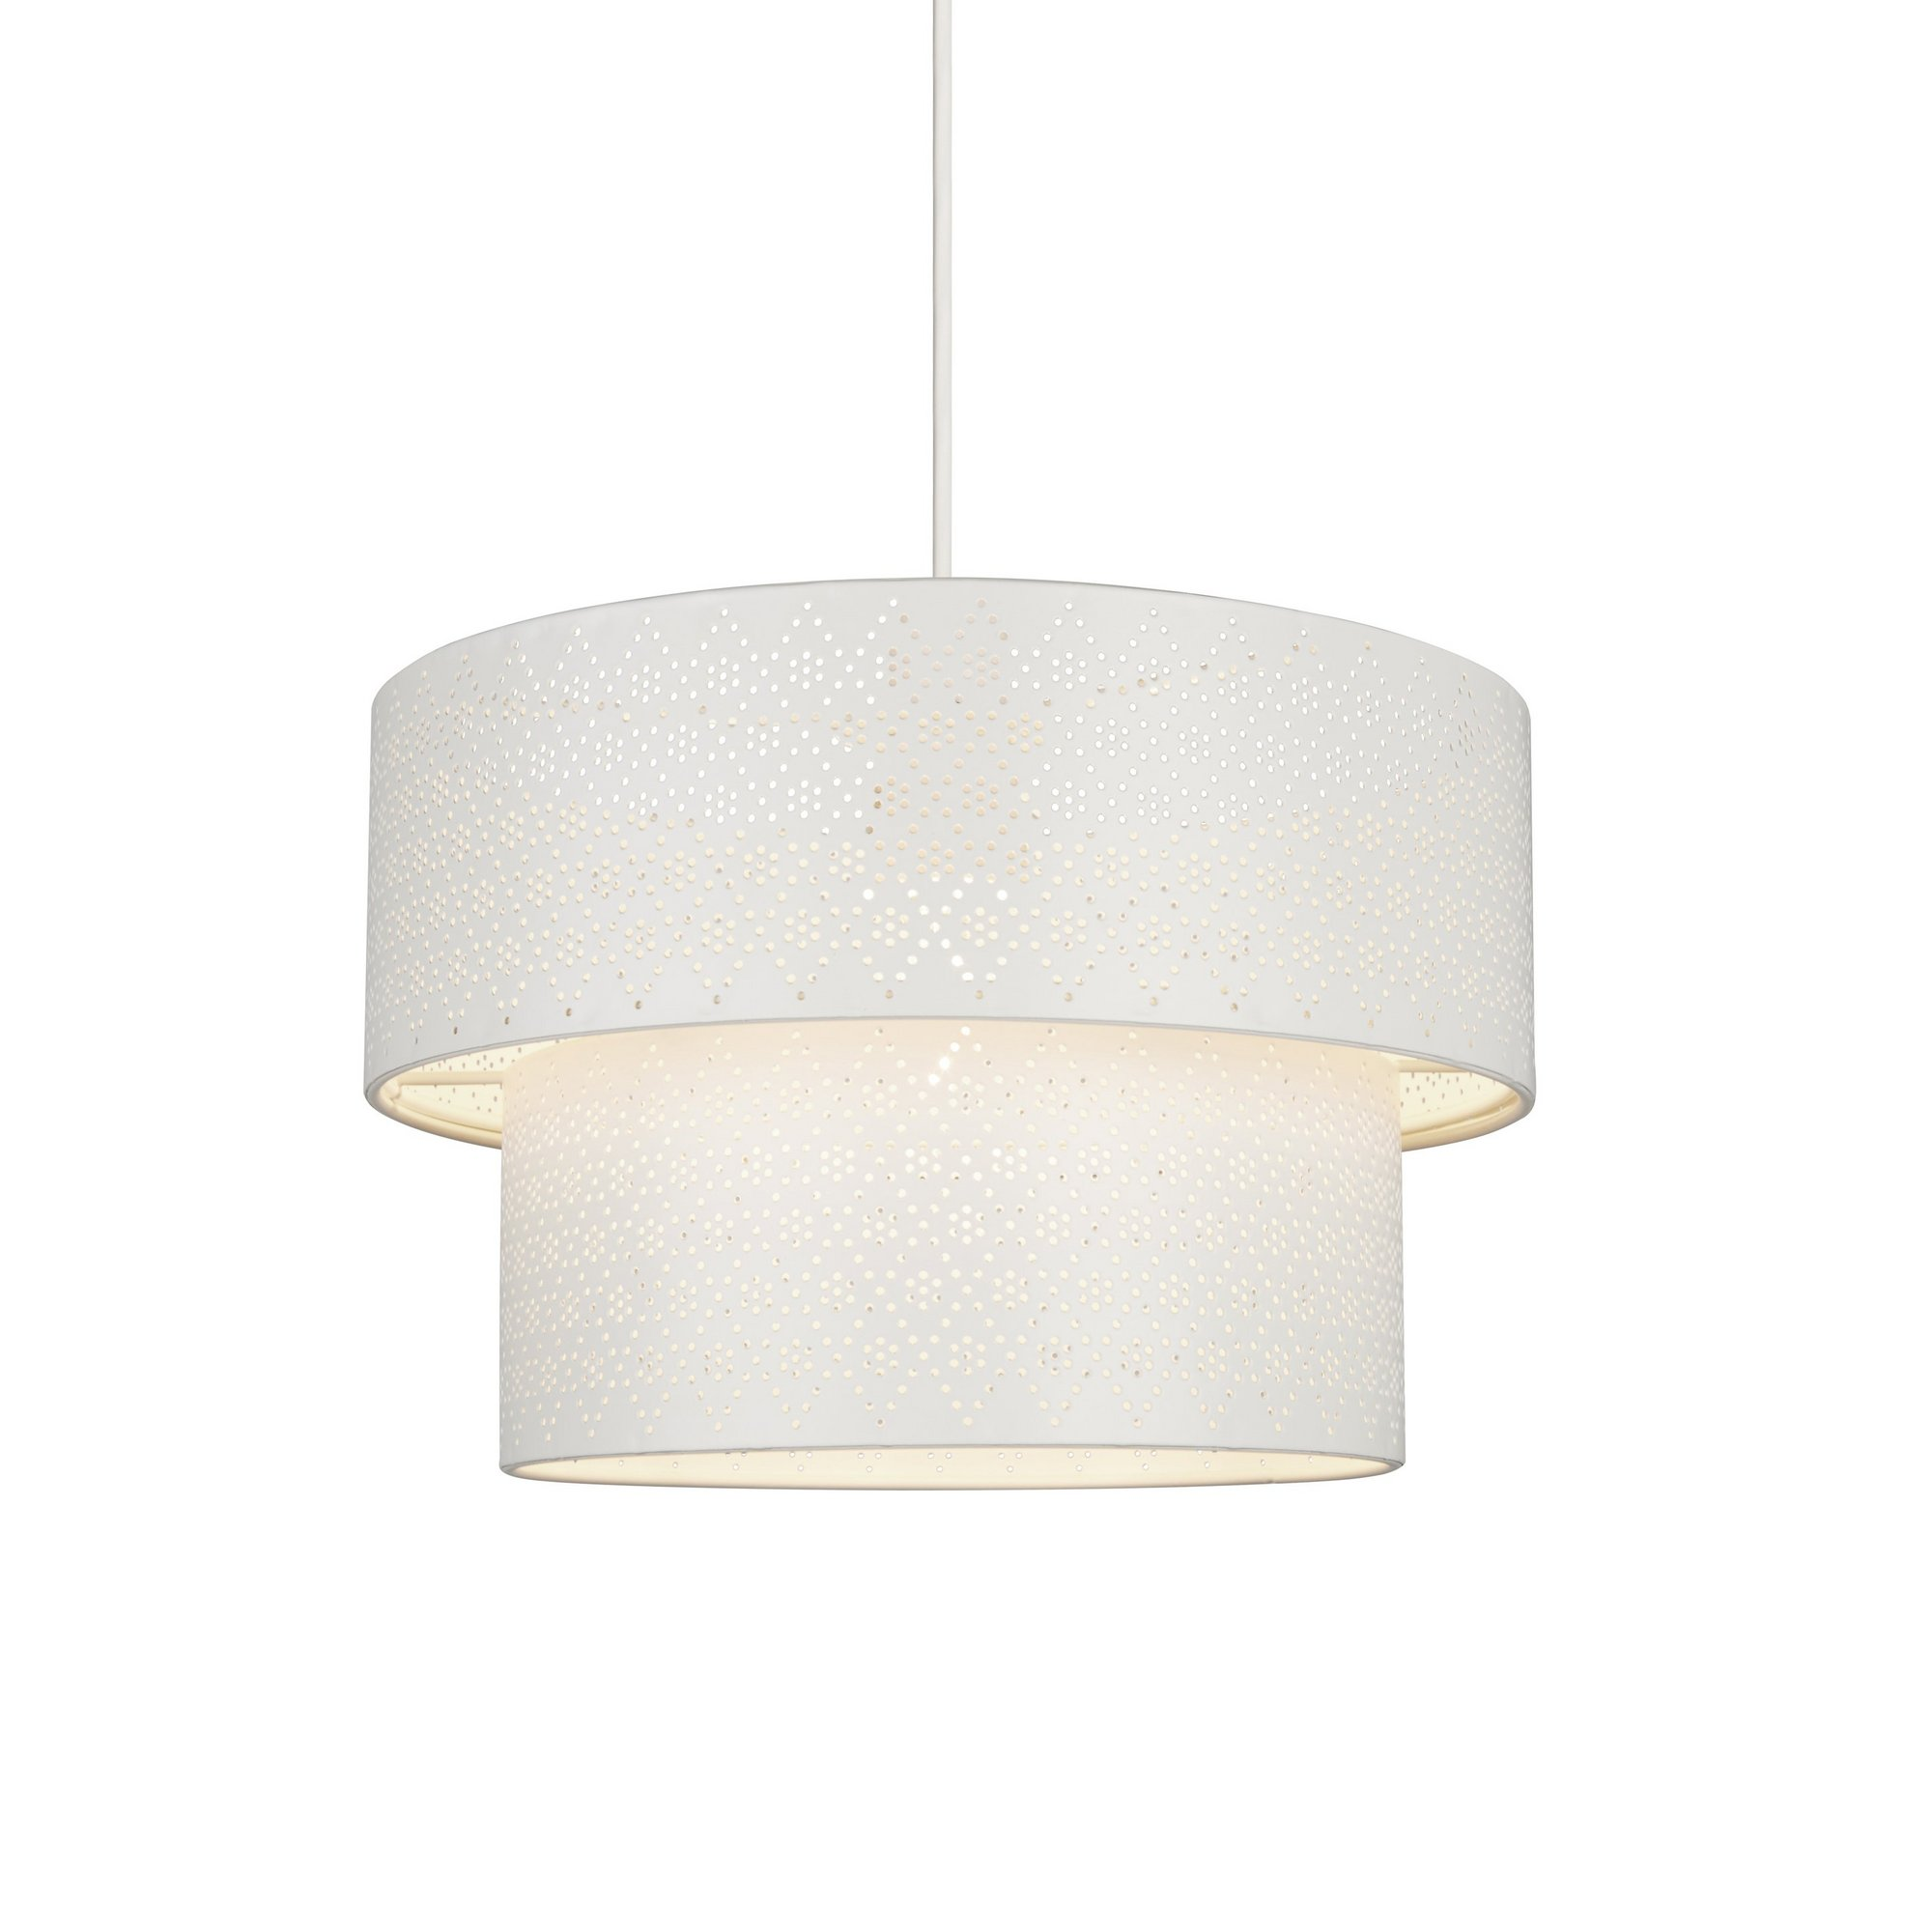 Image of Cream 2 Tier Easy Fit Fretwork Drum Light Shade